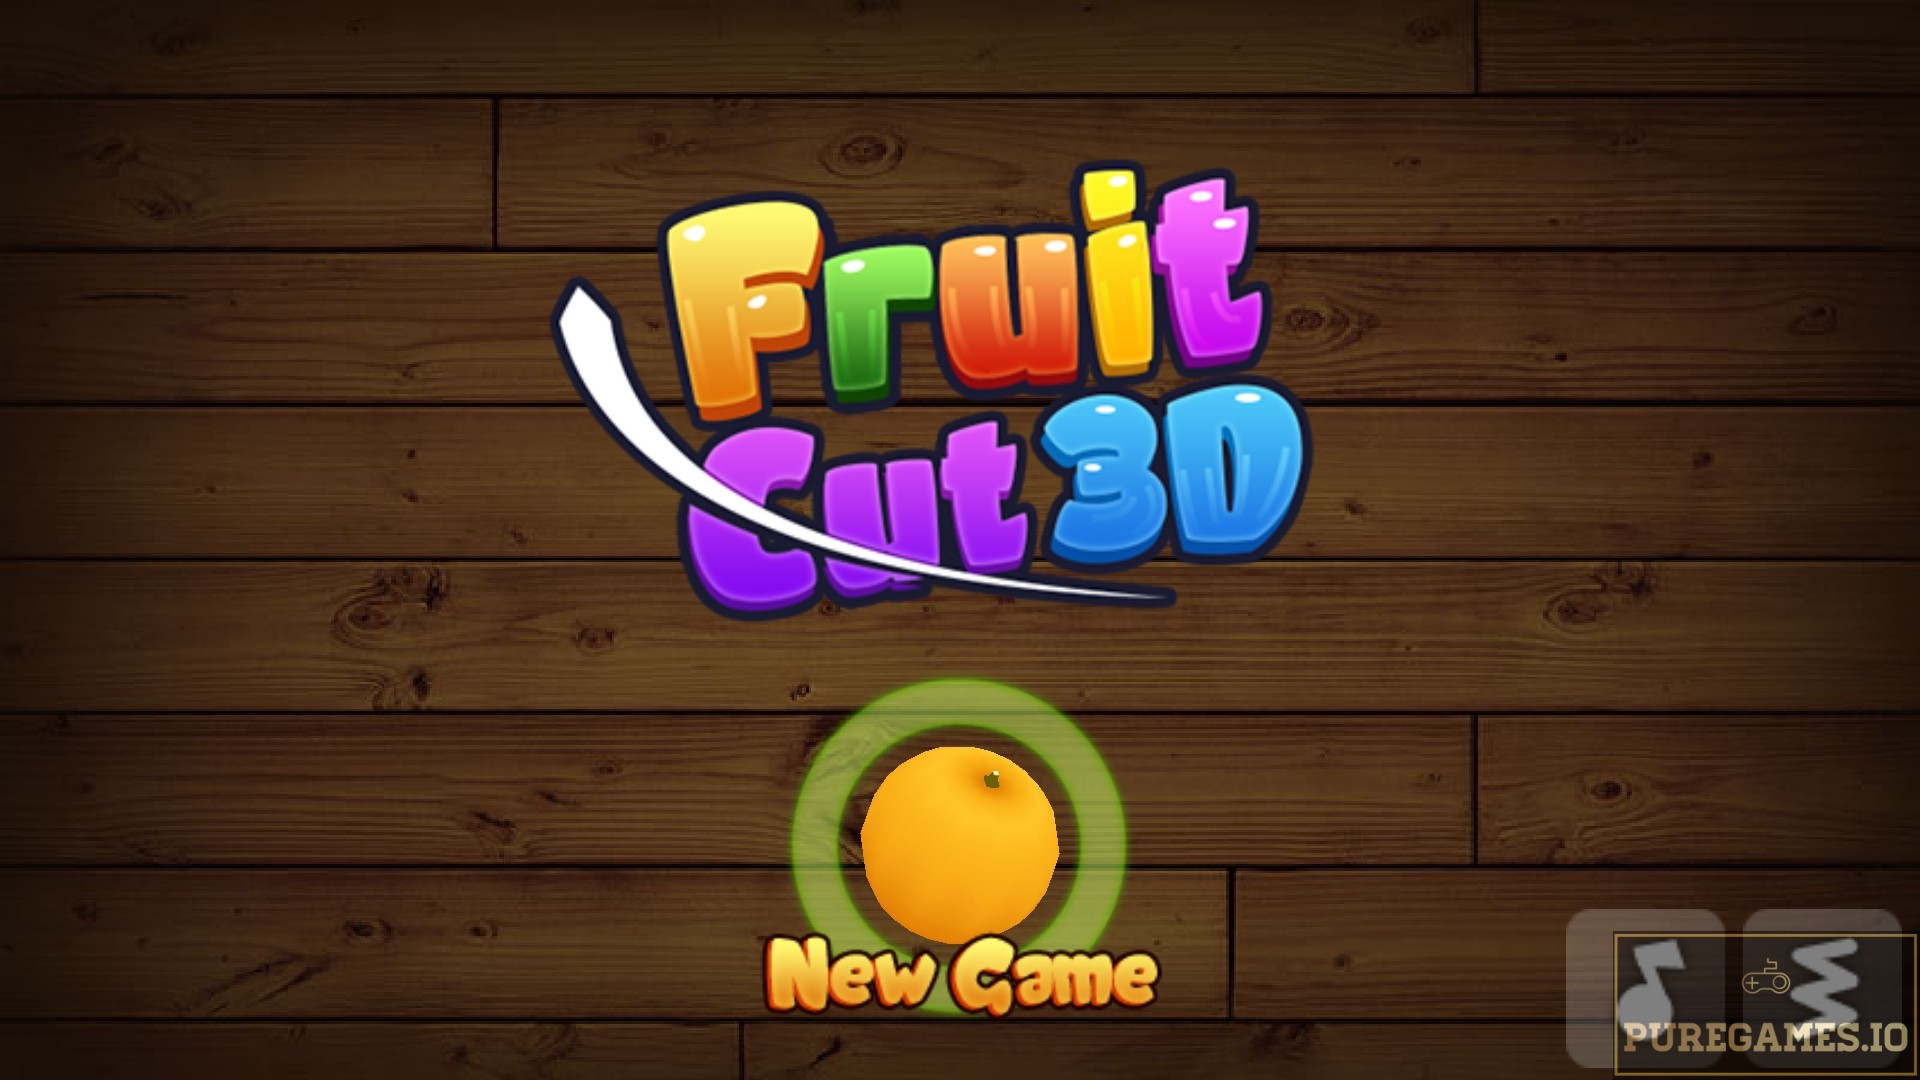 Download Fruit Cut 3D MOD APK - For Android/iOS 7